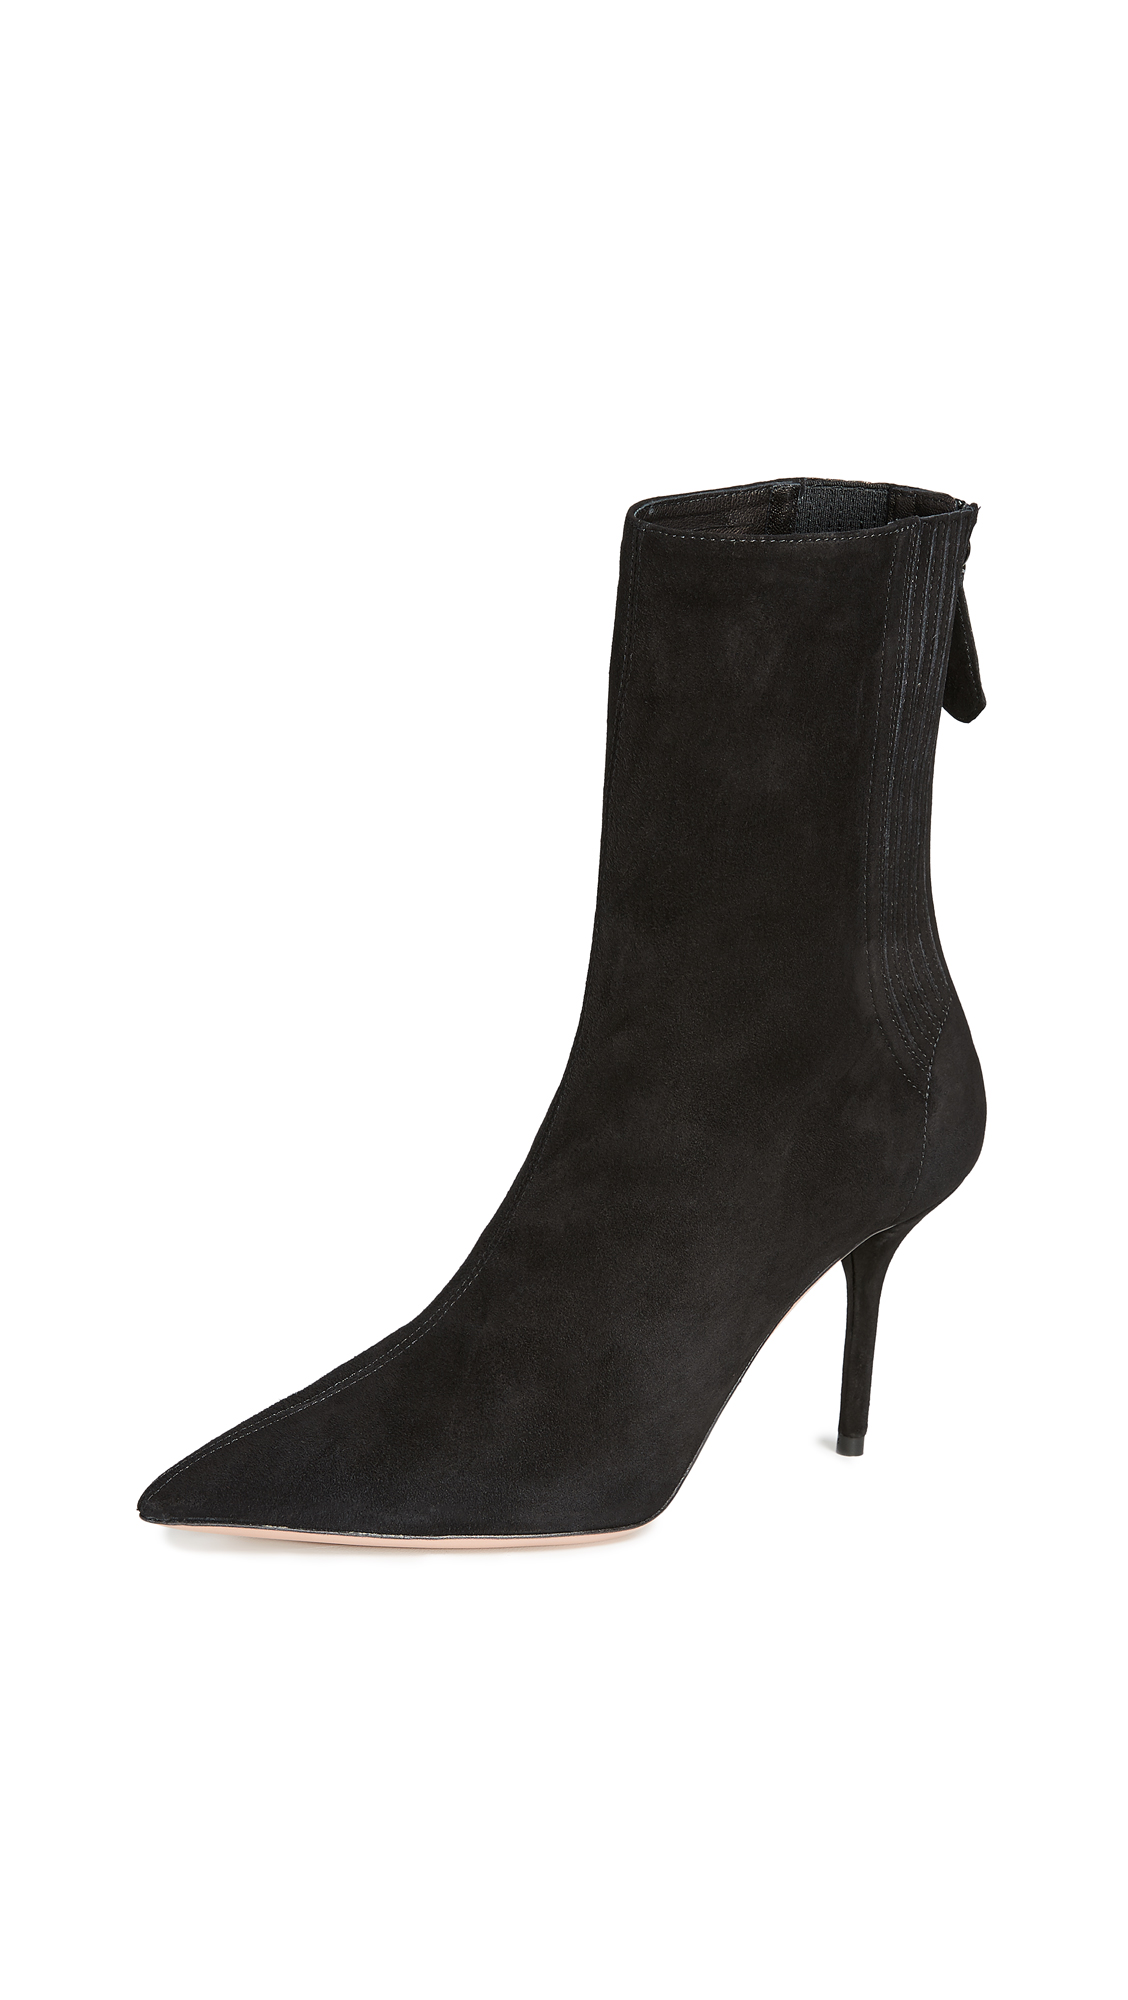 Aquazzura Saint Honore 85 Booties - Black